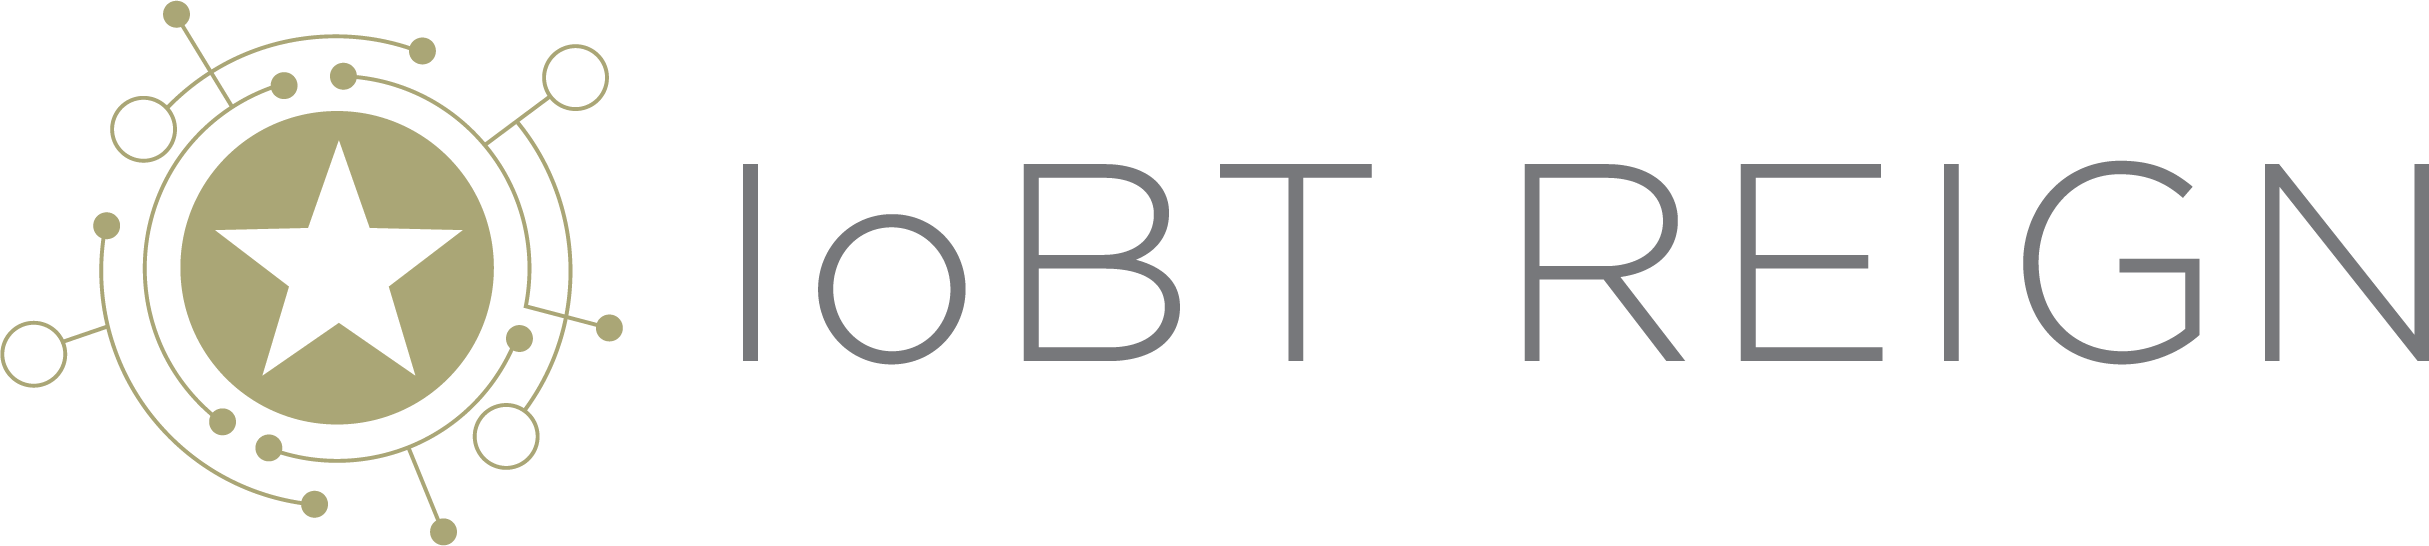 Internet of Battlefield Things (IoBT) REIGN